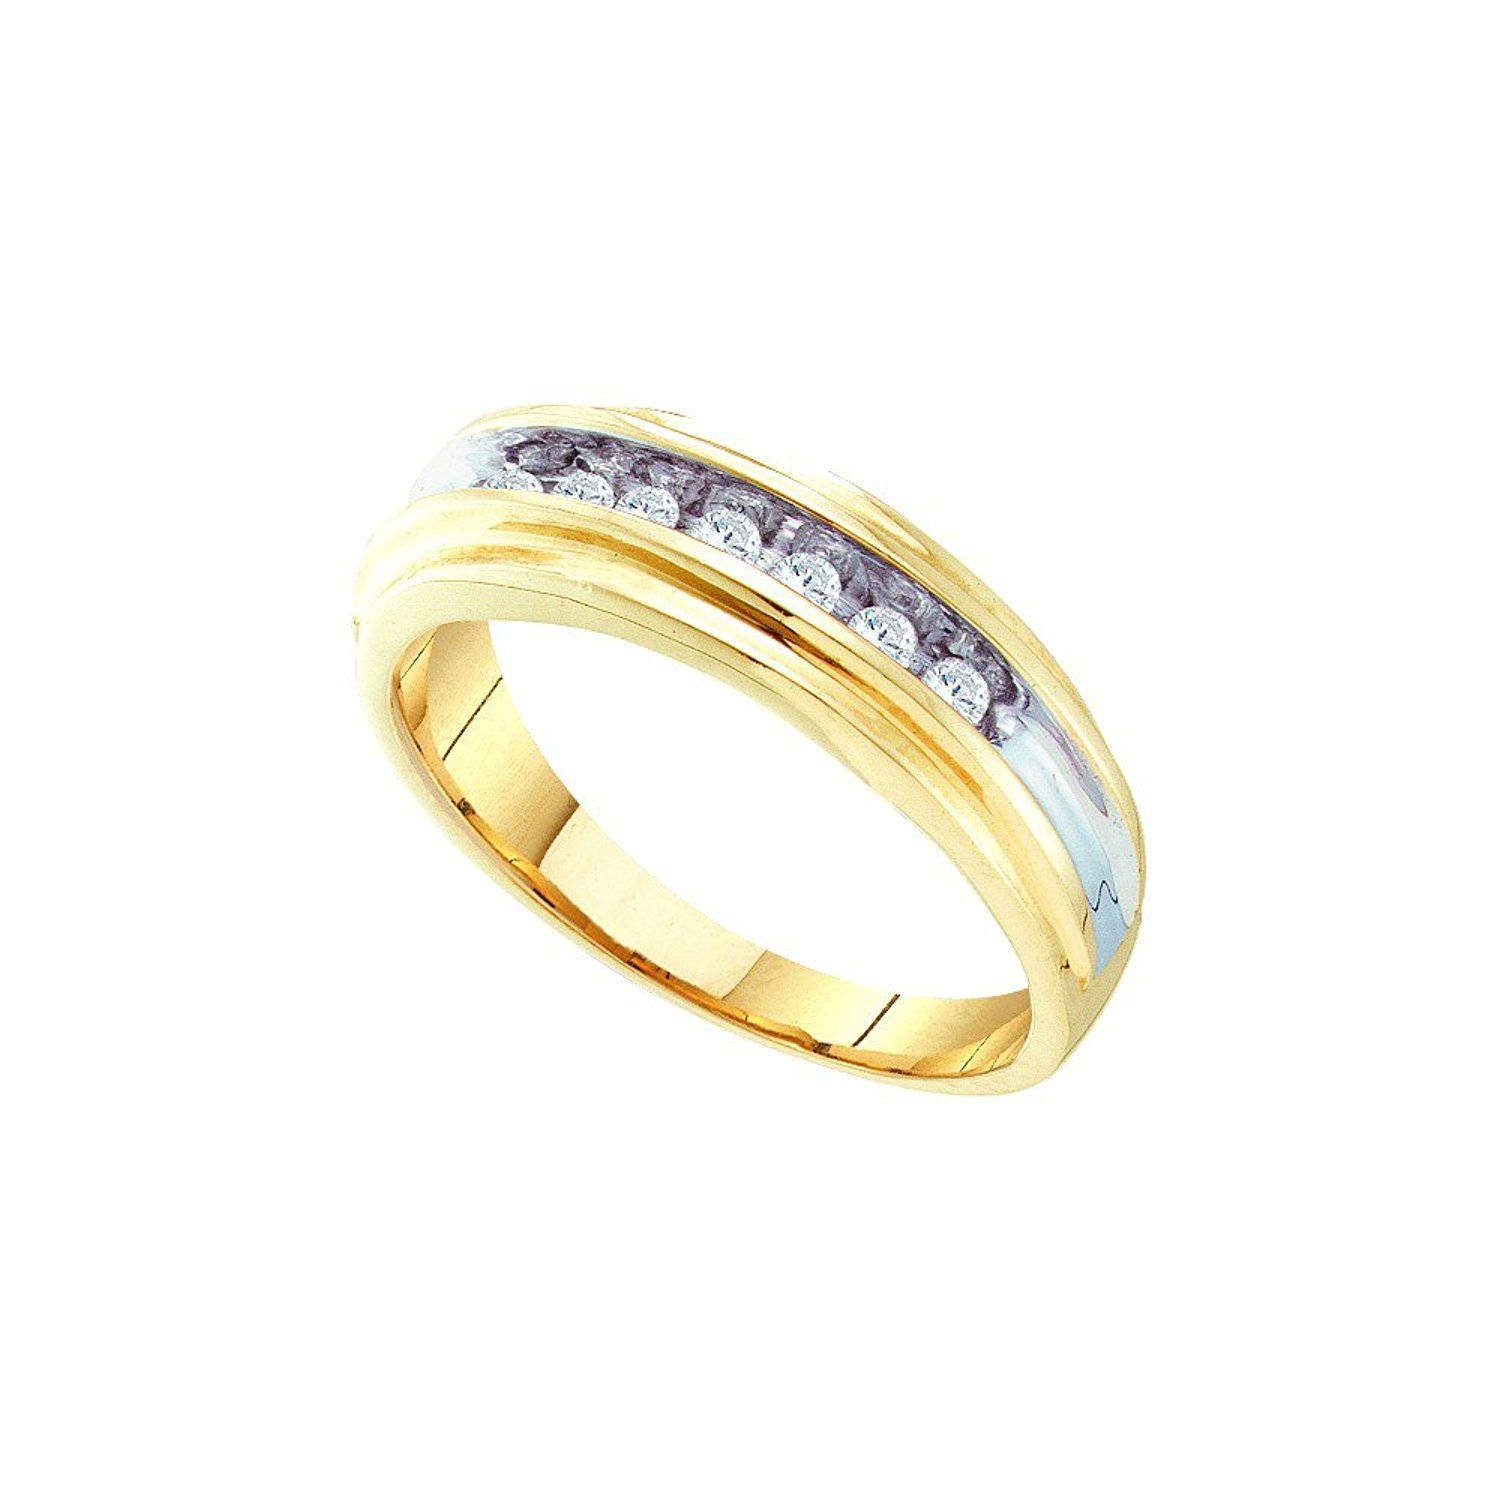 10k Yellow Gold Ring Mens Five Stone Small Diamond Wedding Band Round Channel Set Polished 1//20 ctw